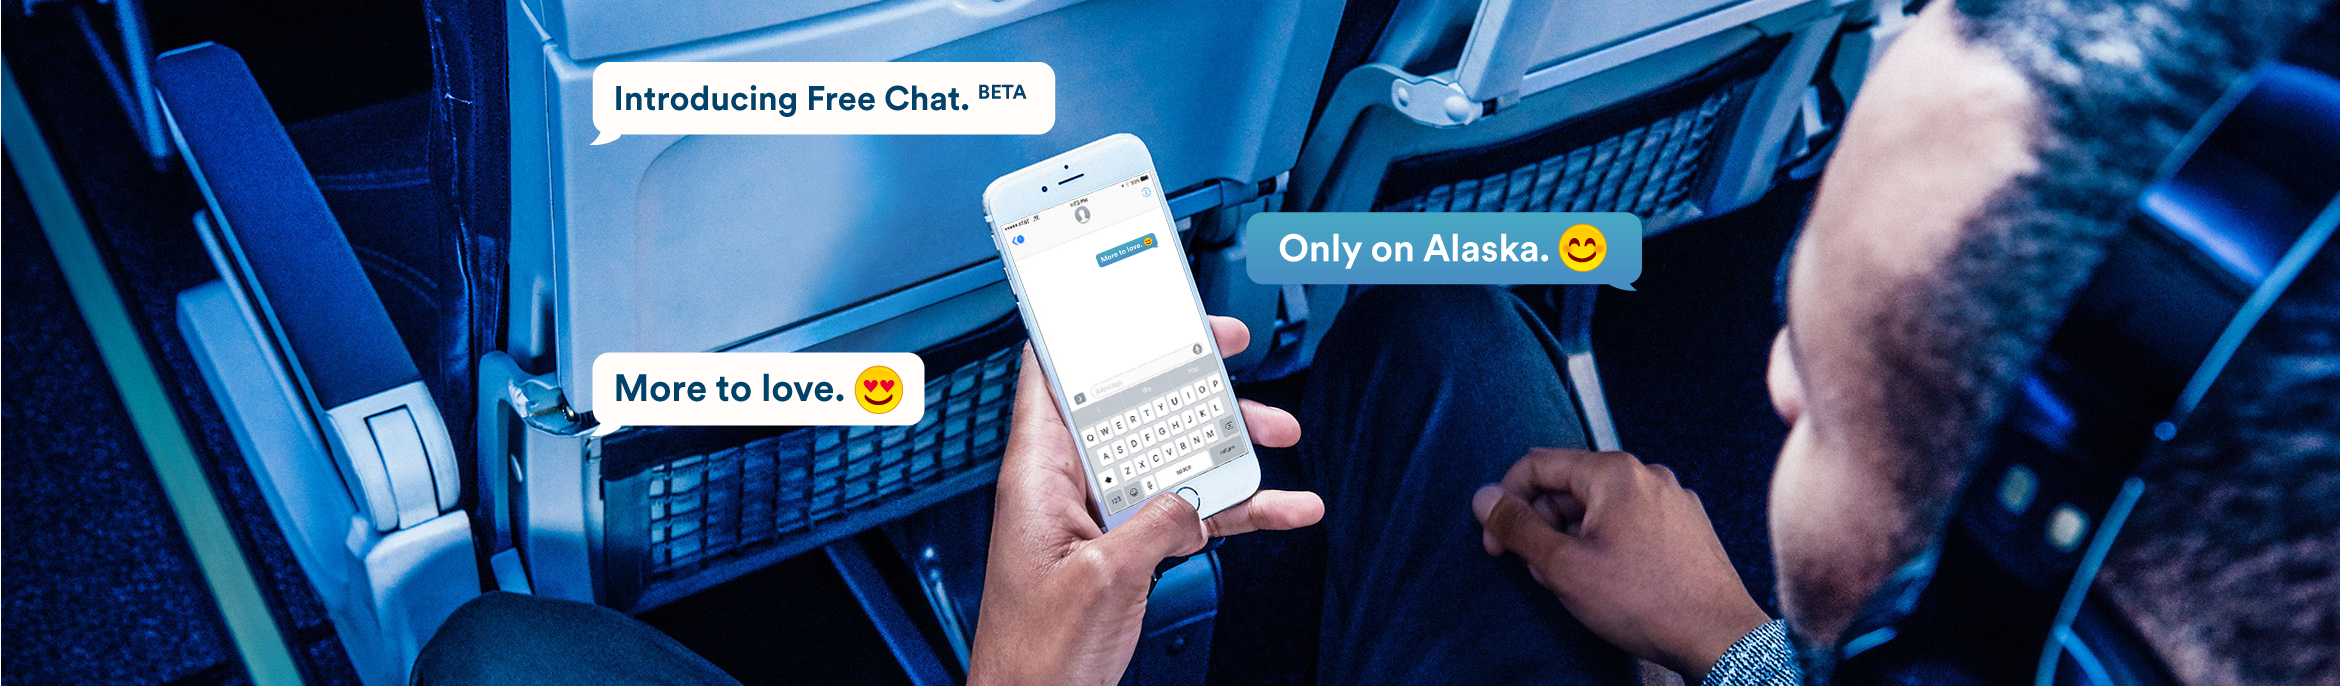 Alaska Airlines Inflight Entertainment Changes 2017: Free Texting and